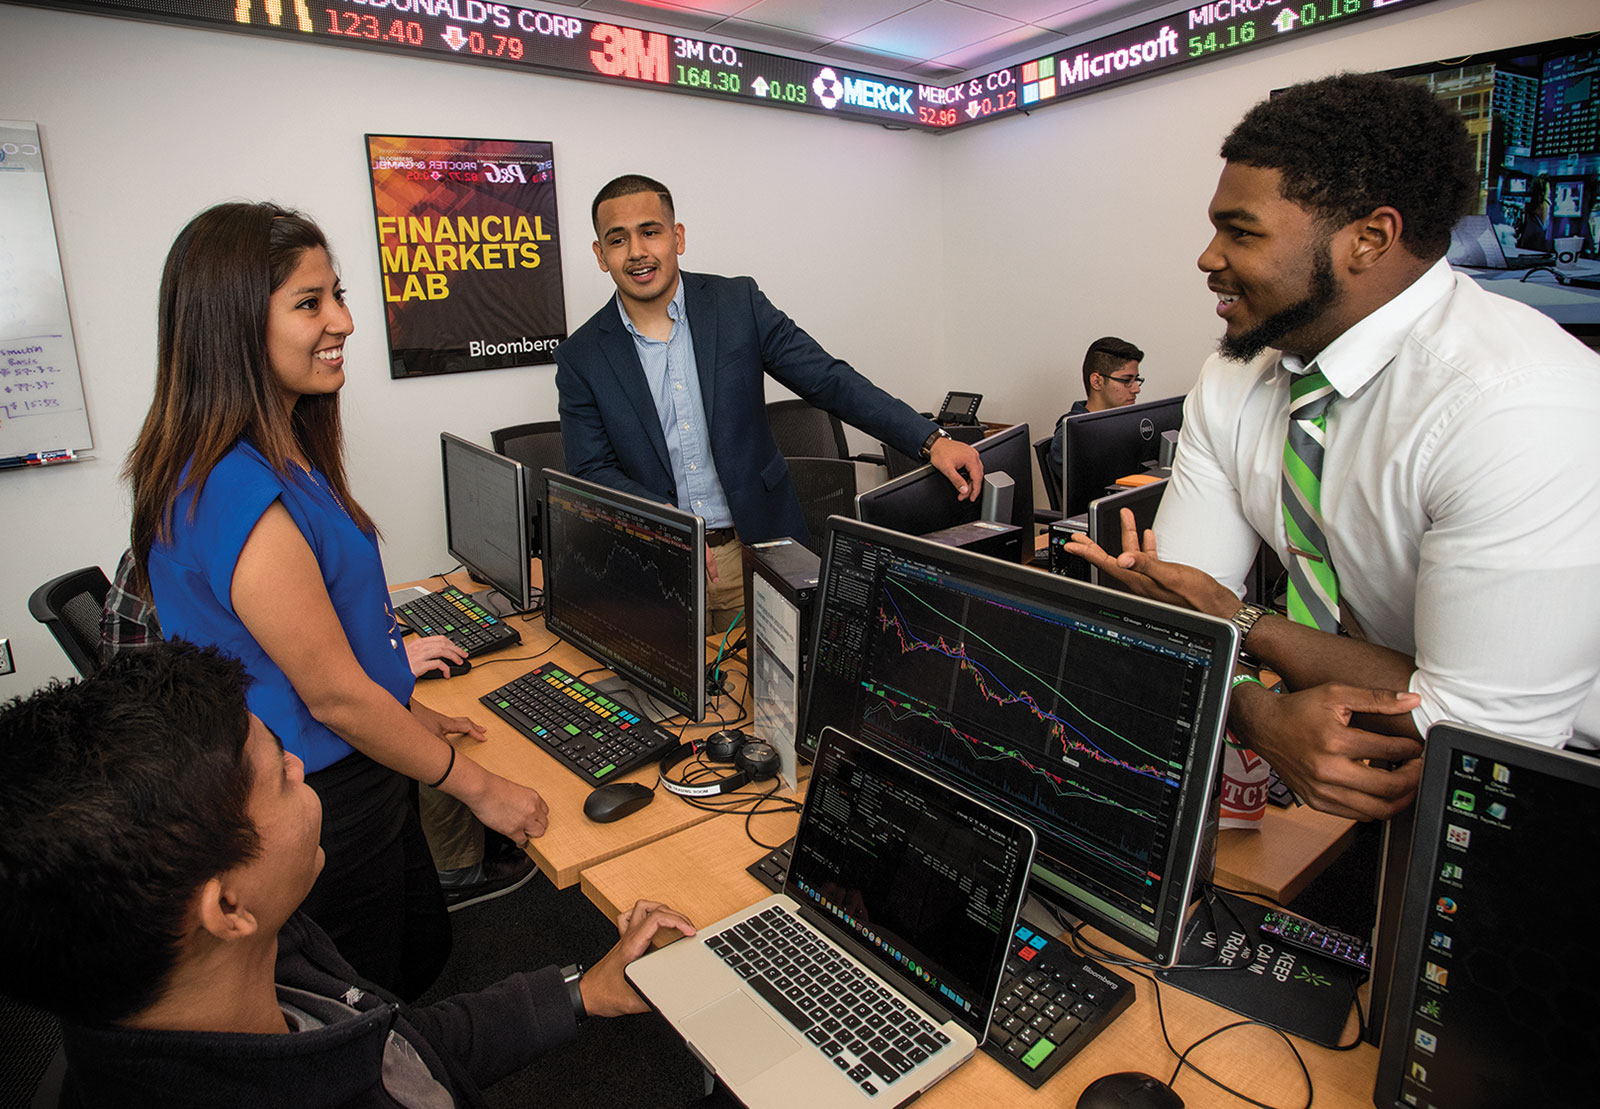 Students in the stock market room